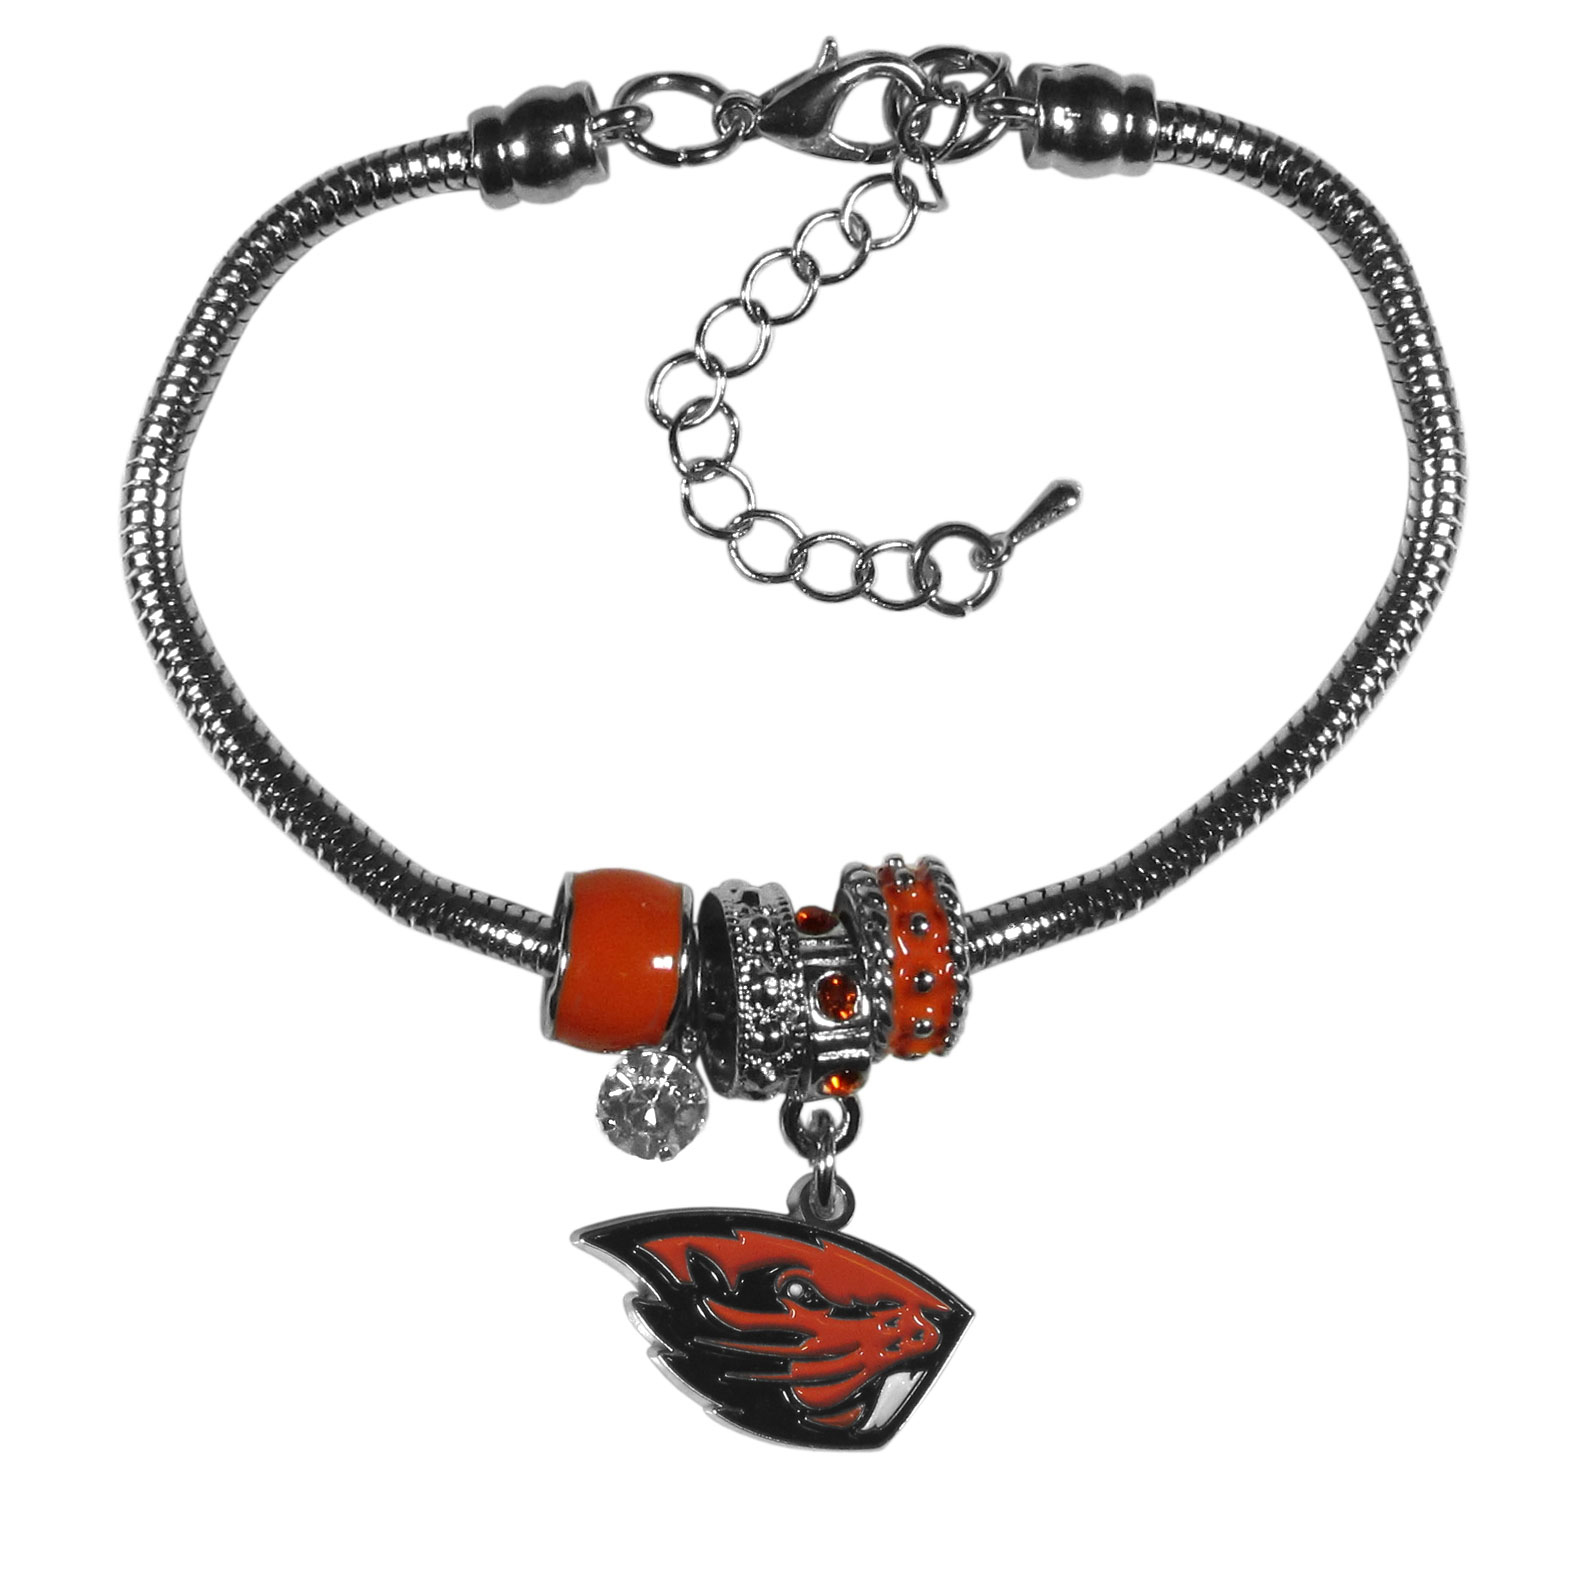 Oregon St. Beavers Euro Bead Bracelet - We have combined the wildly popular Euro style beads with your favorite team to create our  Oregon St. Beavers bead bracelet. The 7.5 inch snake chain with 2 inch extender features 4 Euro beads with enameled team colors and rhinestone accents with a high polish, nickel free charm and rhinestone charm. Perfect way to show off your team pride.